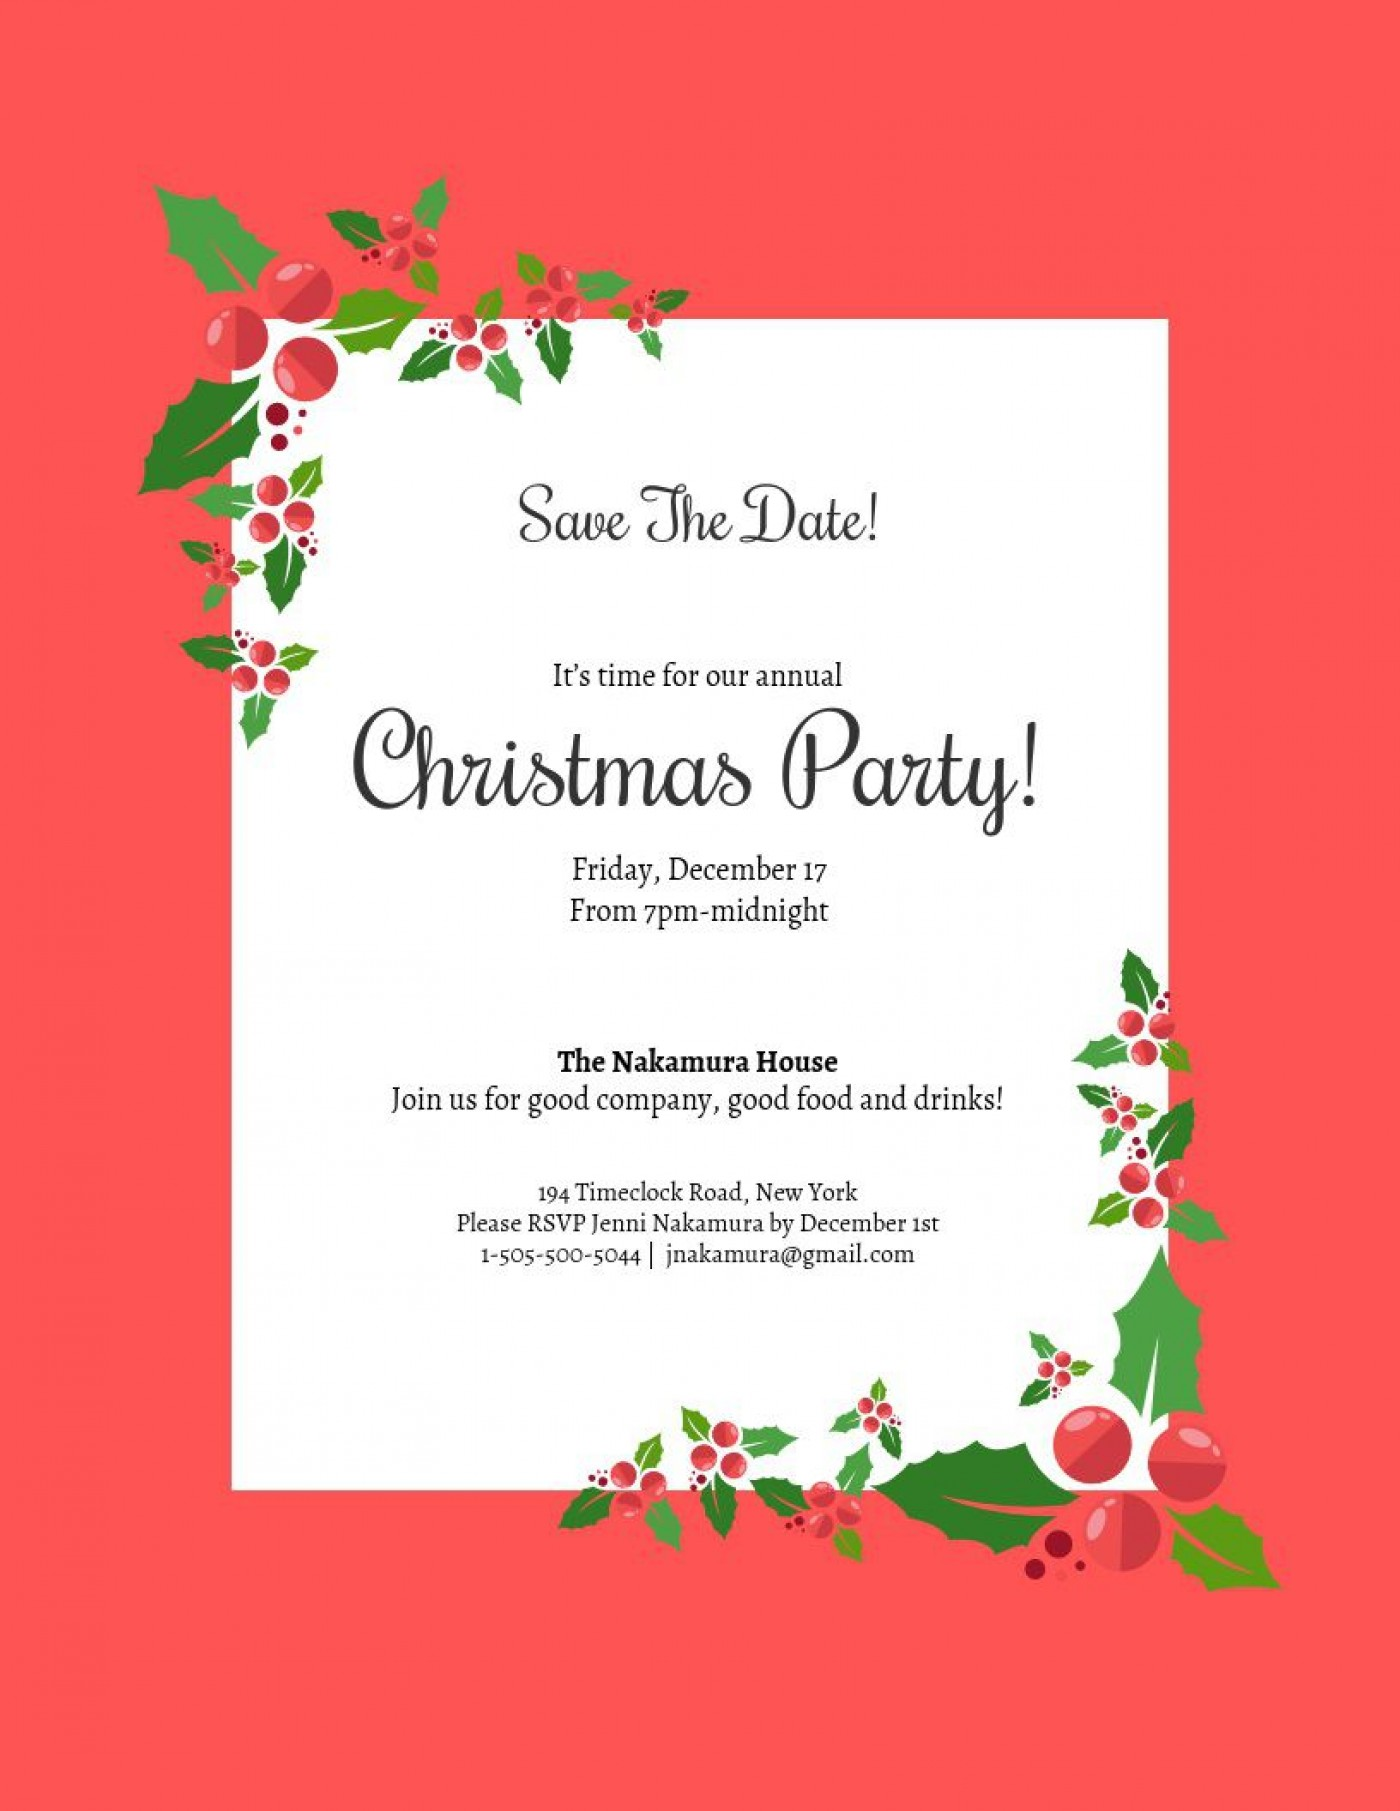 000 Frightening Christma Party Invitation Template Idea  Holiday Download Free Psd1400